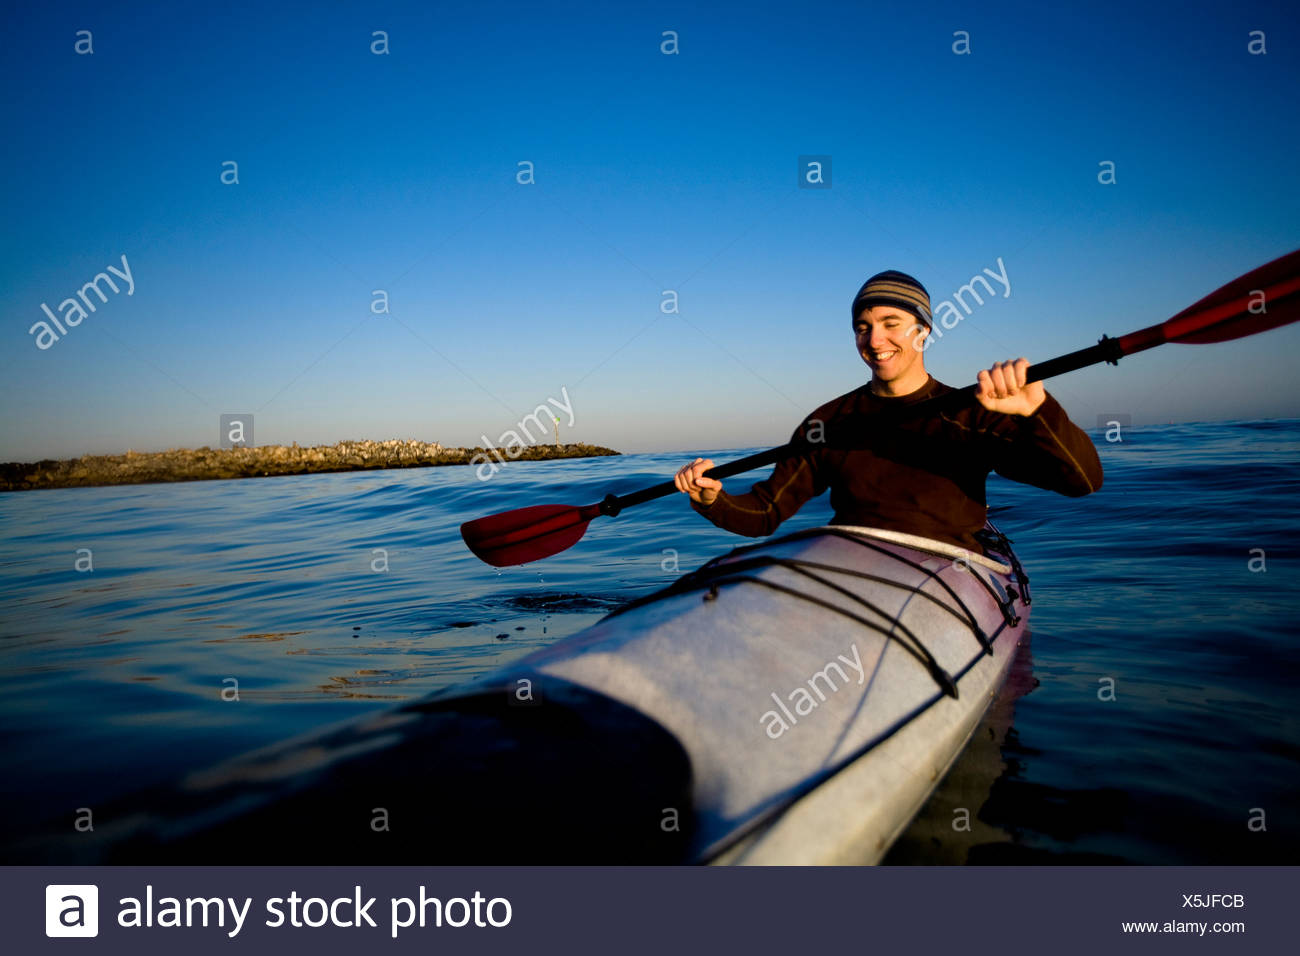 A young man smiles while paddling a touring kayak just outside of Ventura Harbor in Ventura, California. - Stock Image